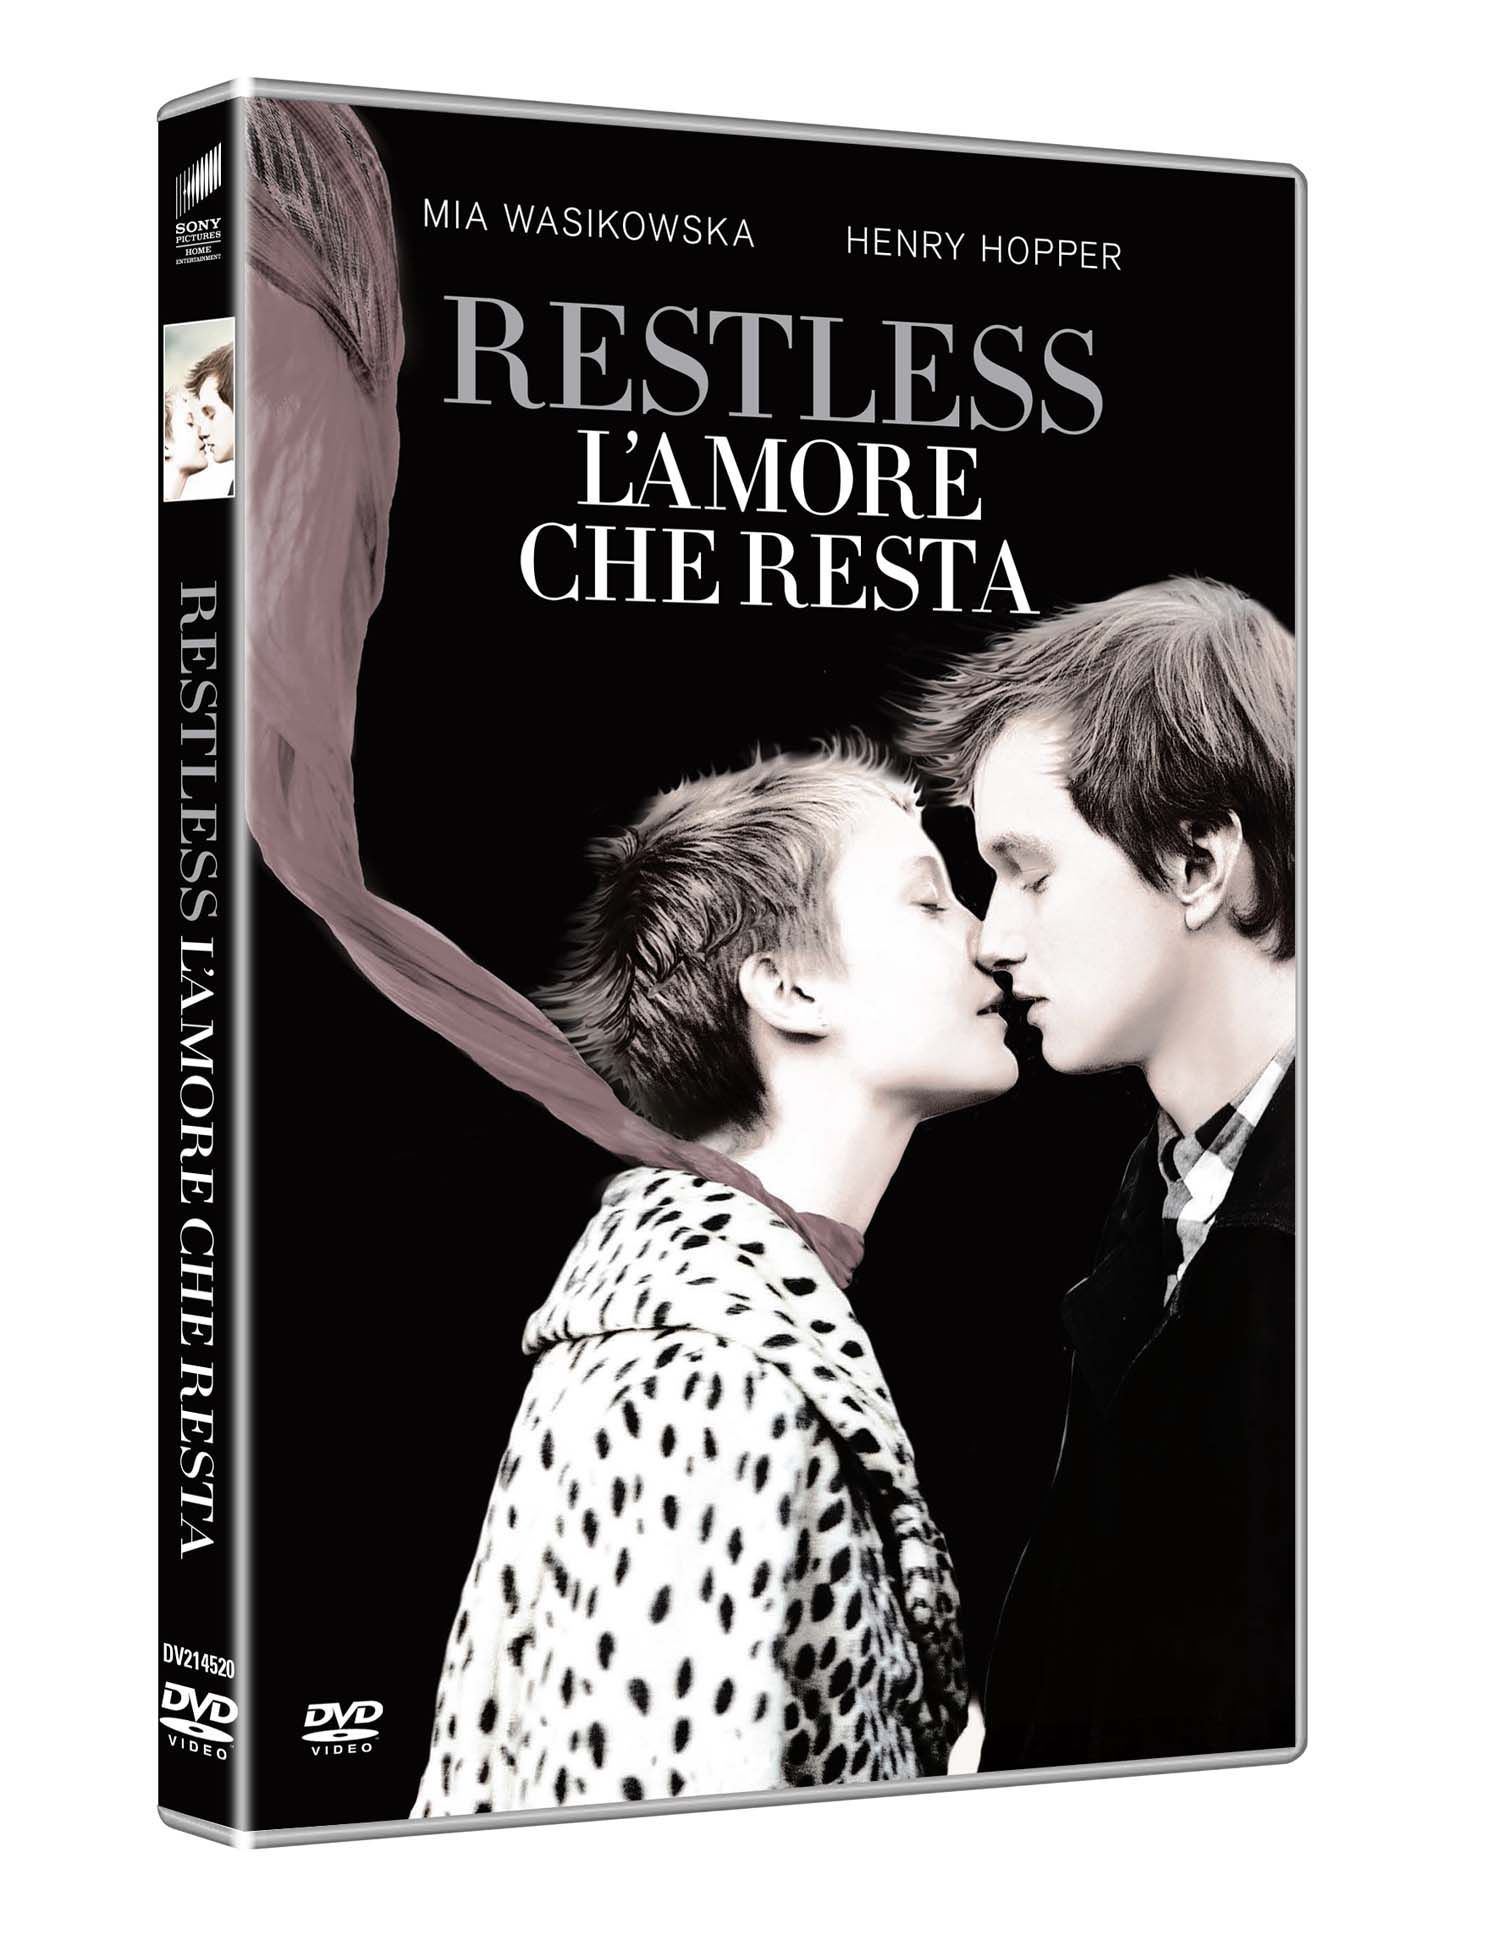 RESTLESS - L'AMORE CHE RESTA (SAN VALENTINO COLLECTION) (DVD)